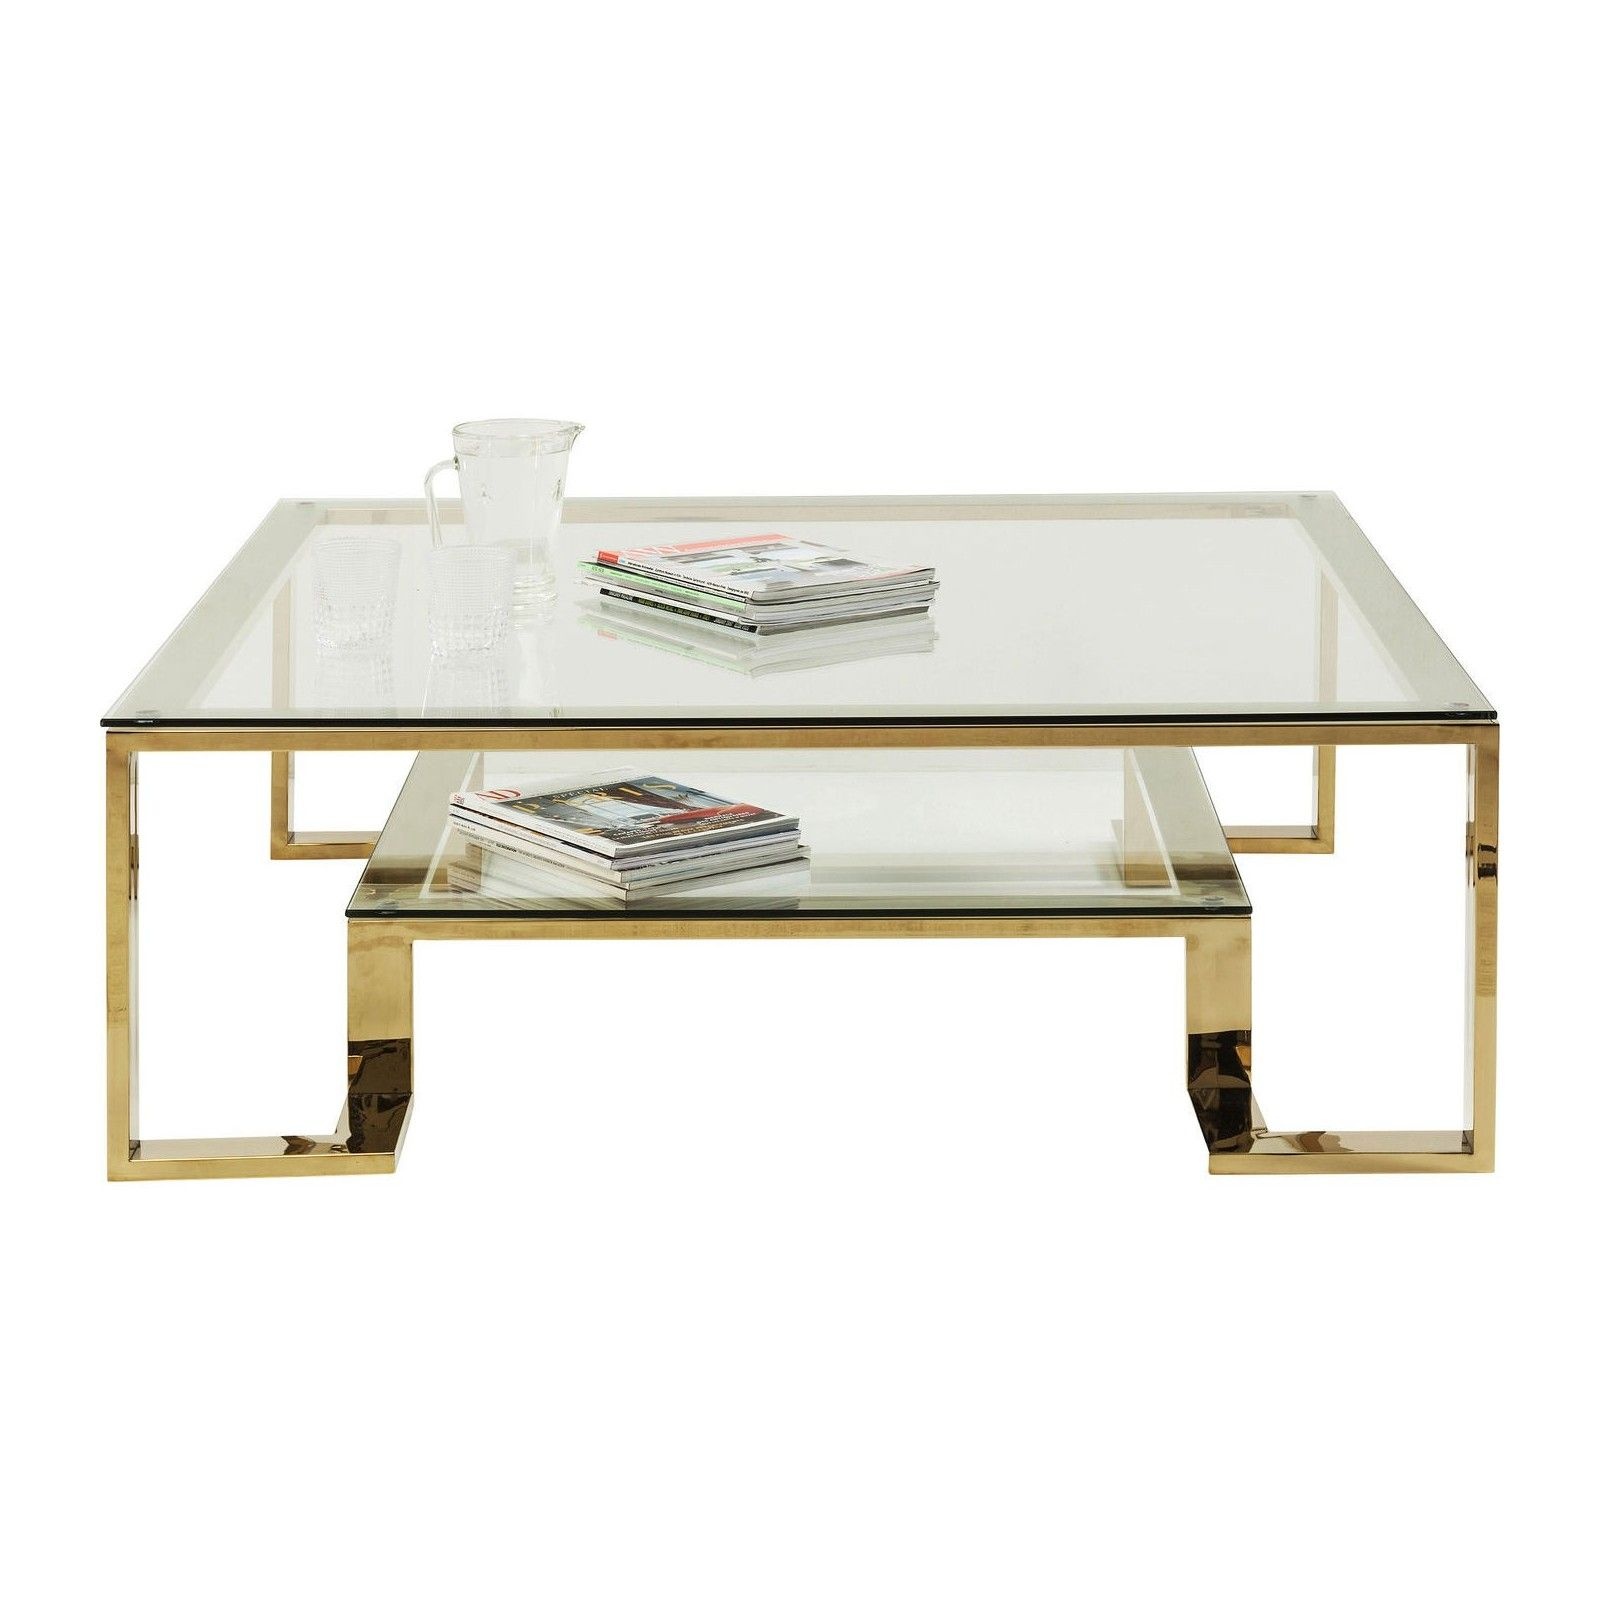 Table Basse Retro Dore Rush Kare Design Table Basse Kare Design Tables Basses Dorees